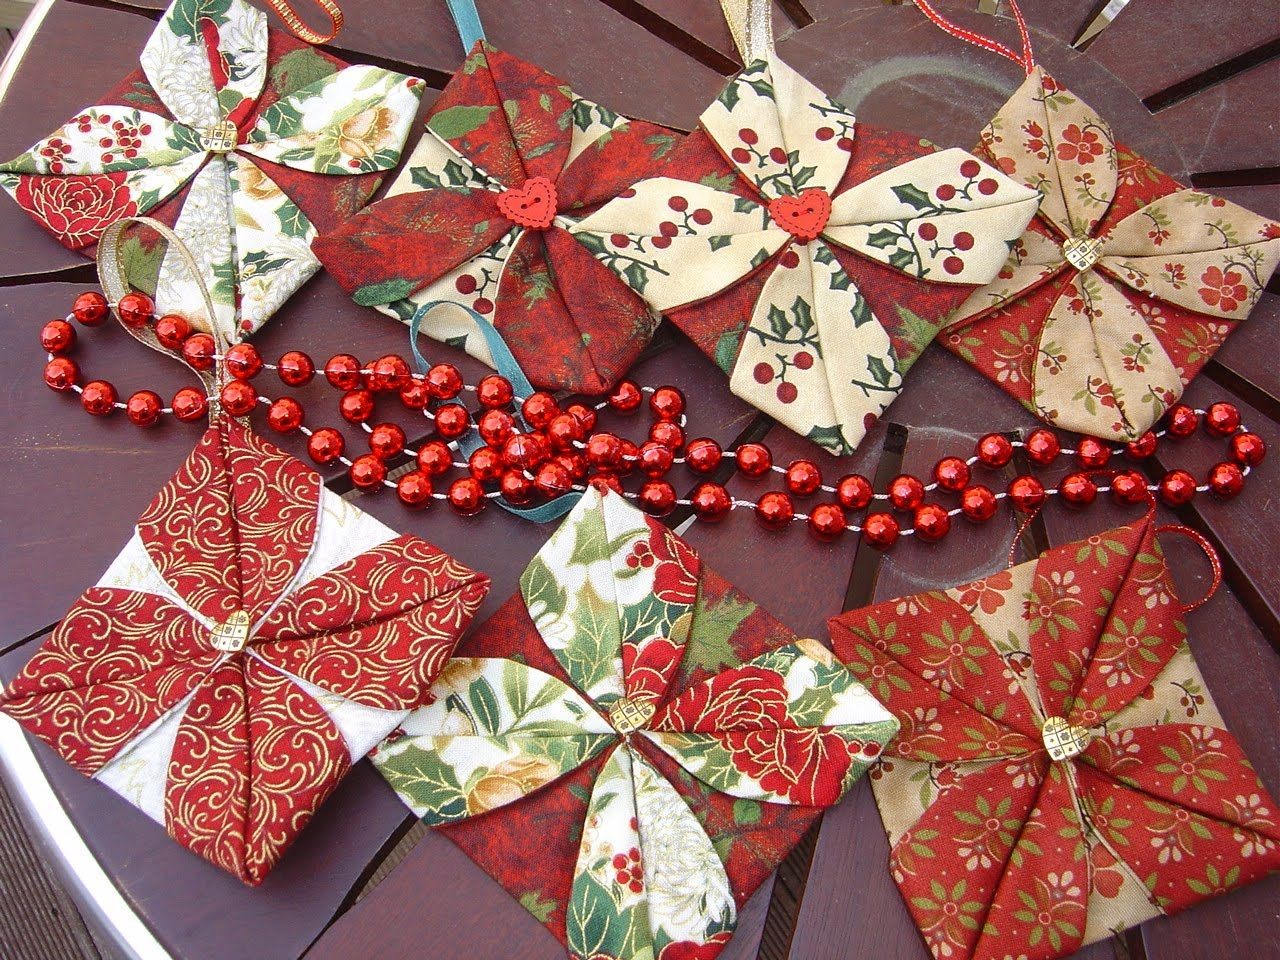 22 Fabric Christmas Ornament Tutorials To Customize Your Christmas Tree This Year Fa Fabric Christmas Ornaments Quilted Christmas Ornaments Fabric Ornaments